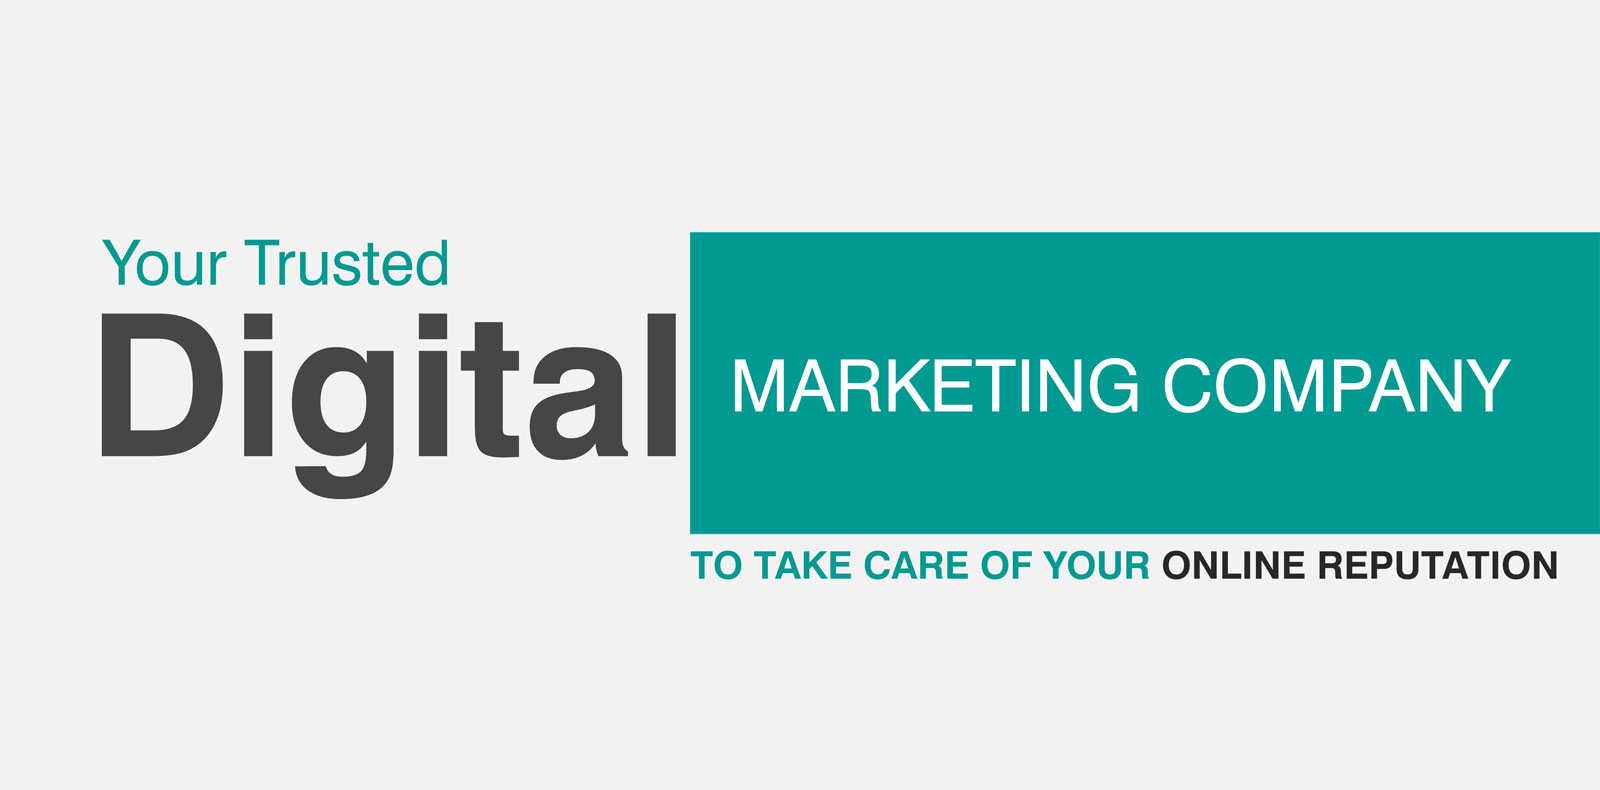 Your Trusted Digital Marketing Company